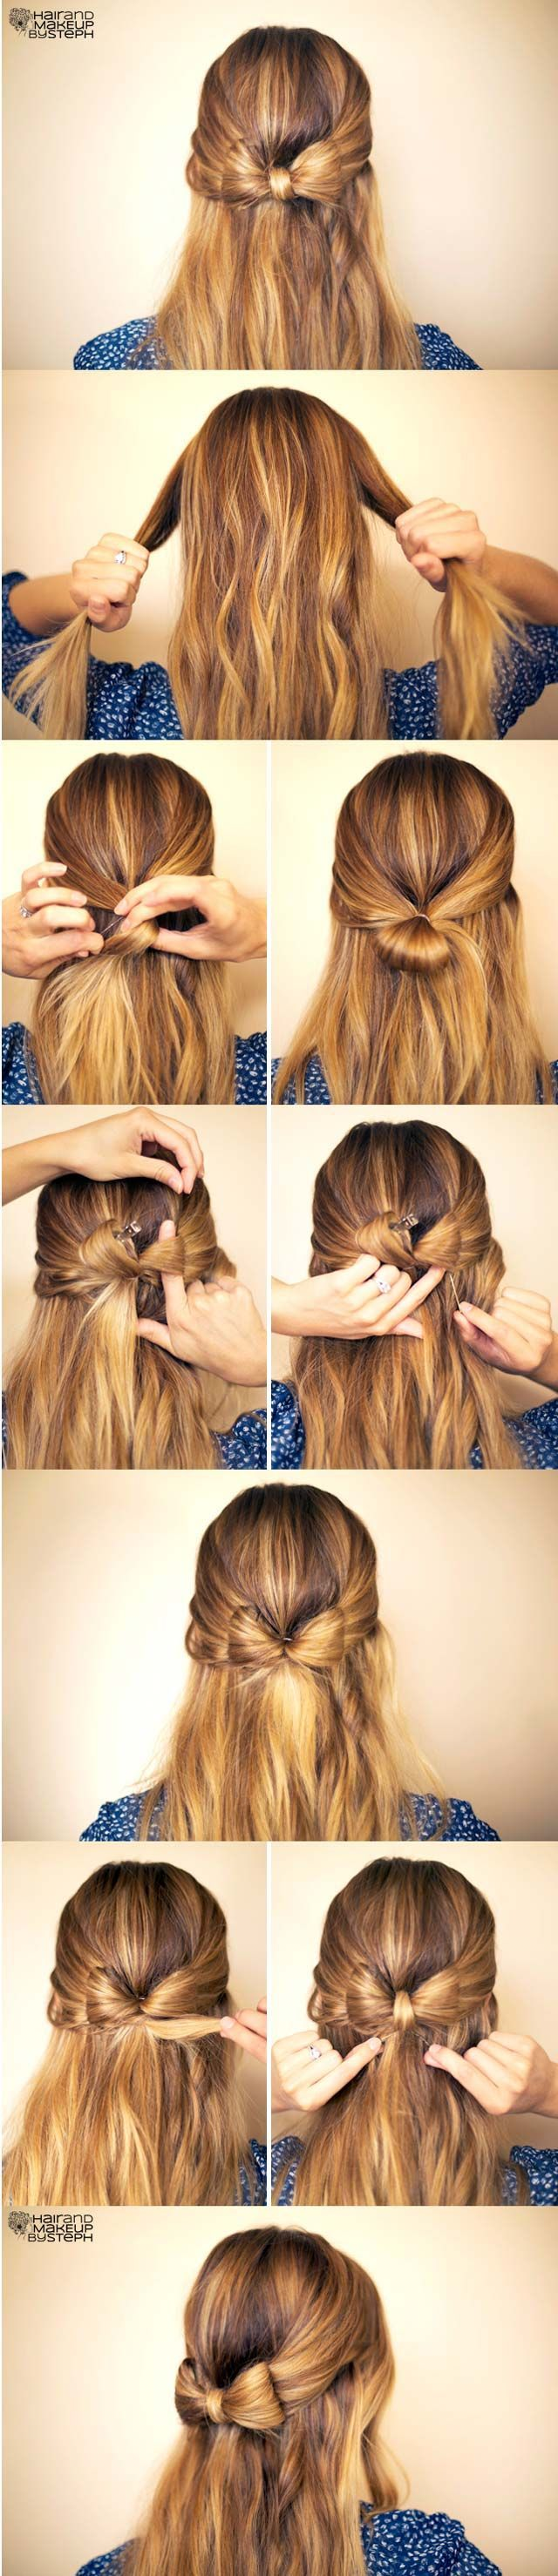 DIY! Your Step-by-Step for the Hair Bow  www.fashiondivade...